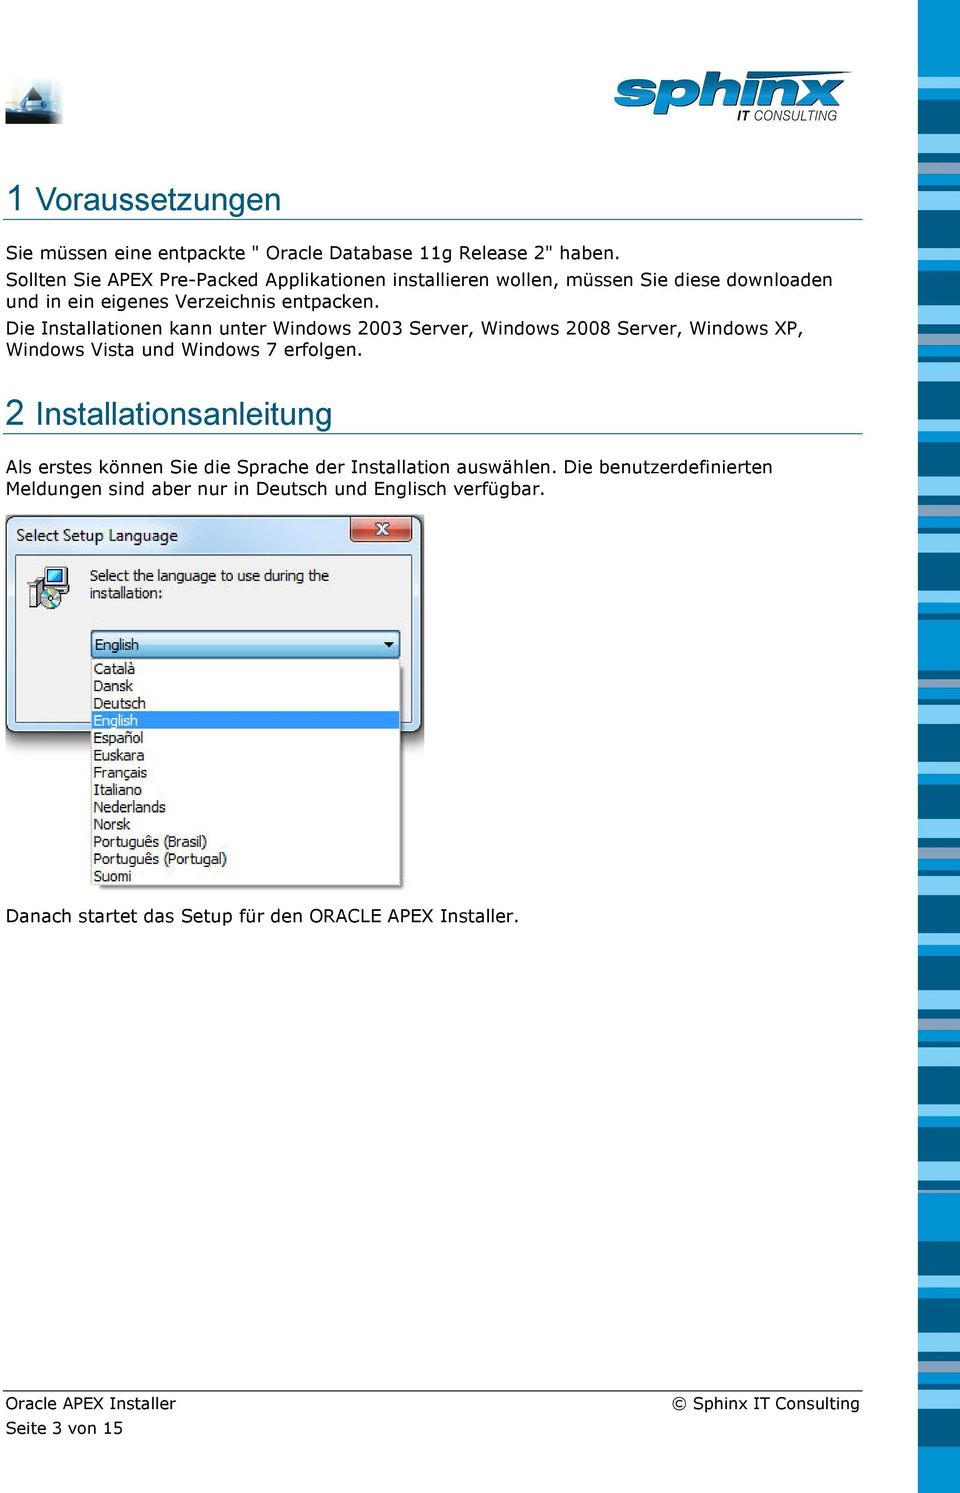 Die Installationen kann unter Windows 2003 Server, Windows 2008 Server, Windows XP, Windows Vista und Windows 7 erfolgen.